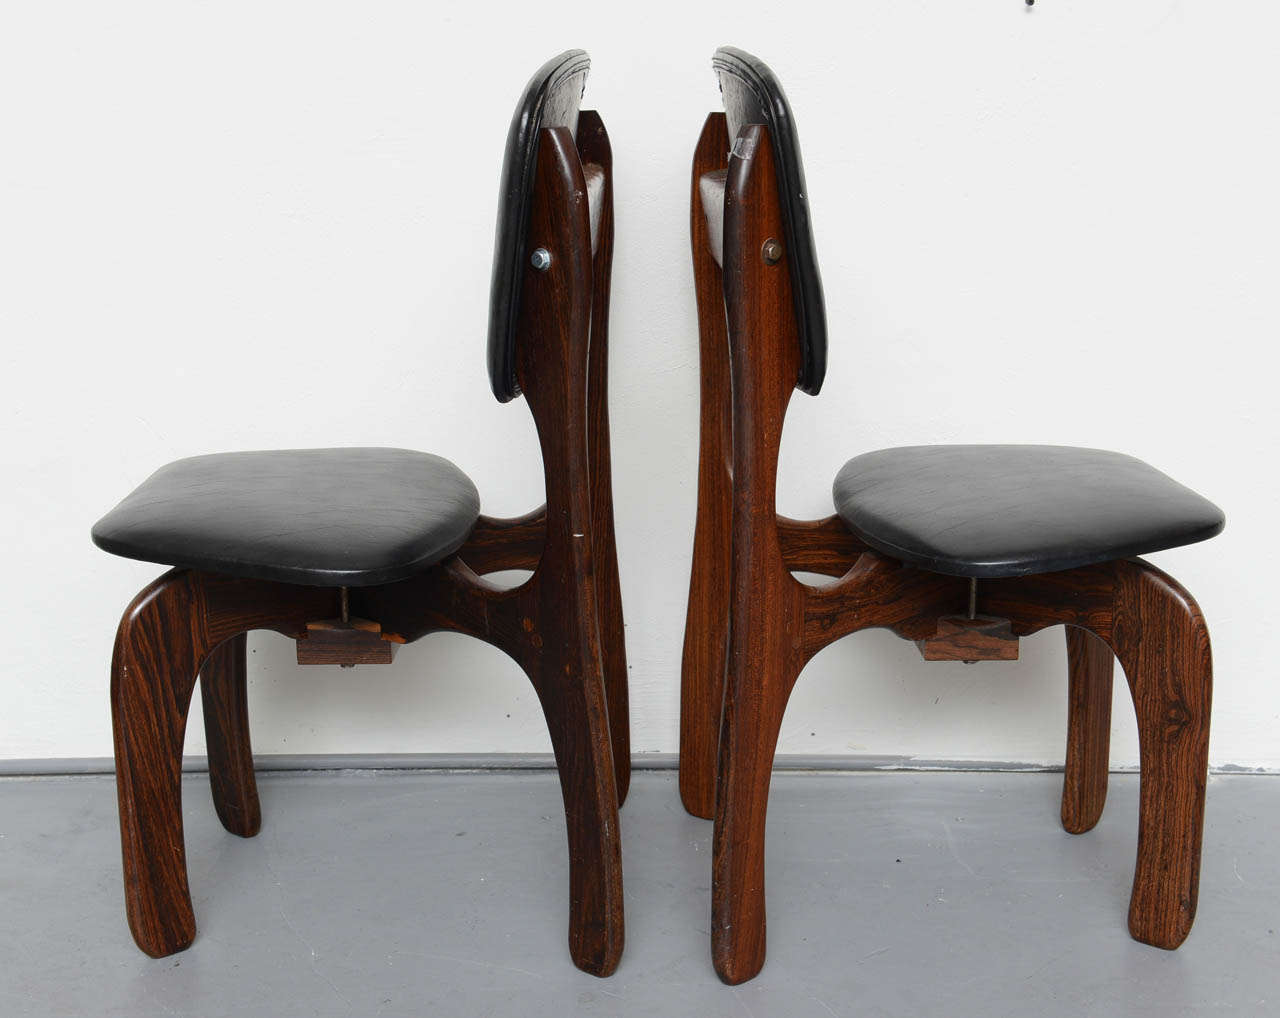 1970s Rosewood Chairs by Don Shoemaker, Mexico In Good Condition For Sale In Miami, FL